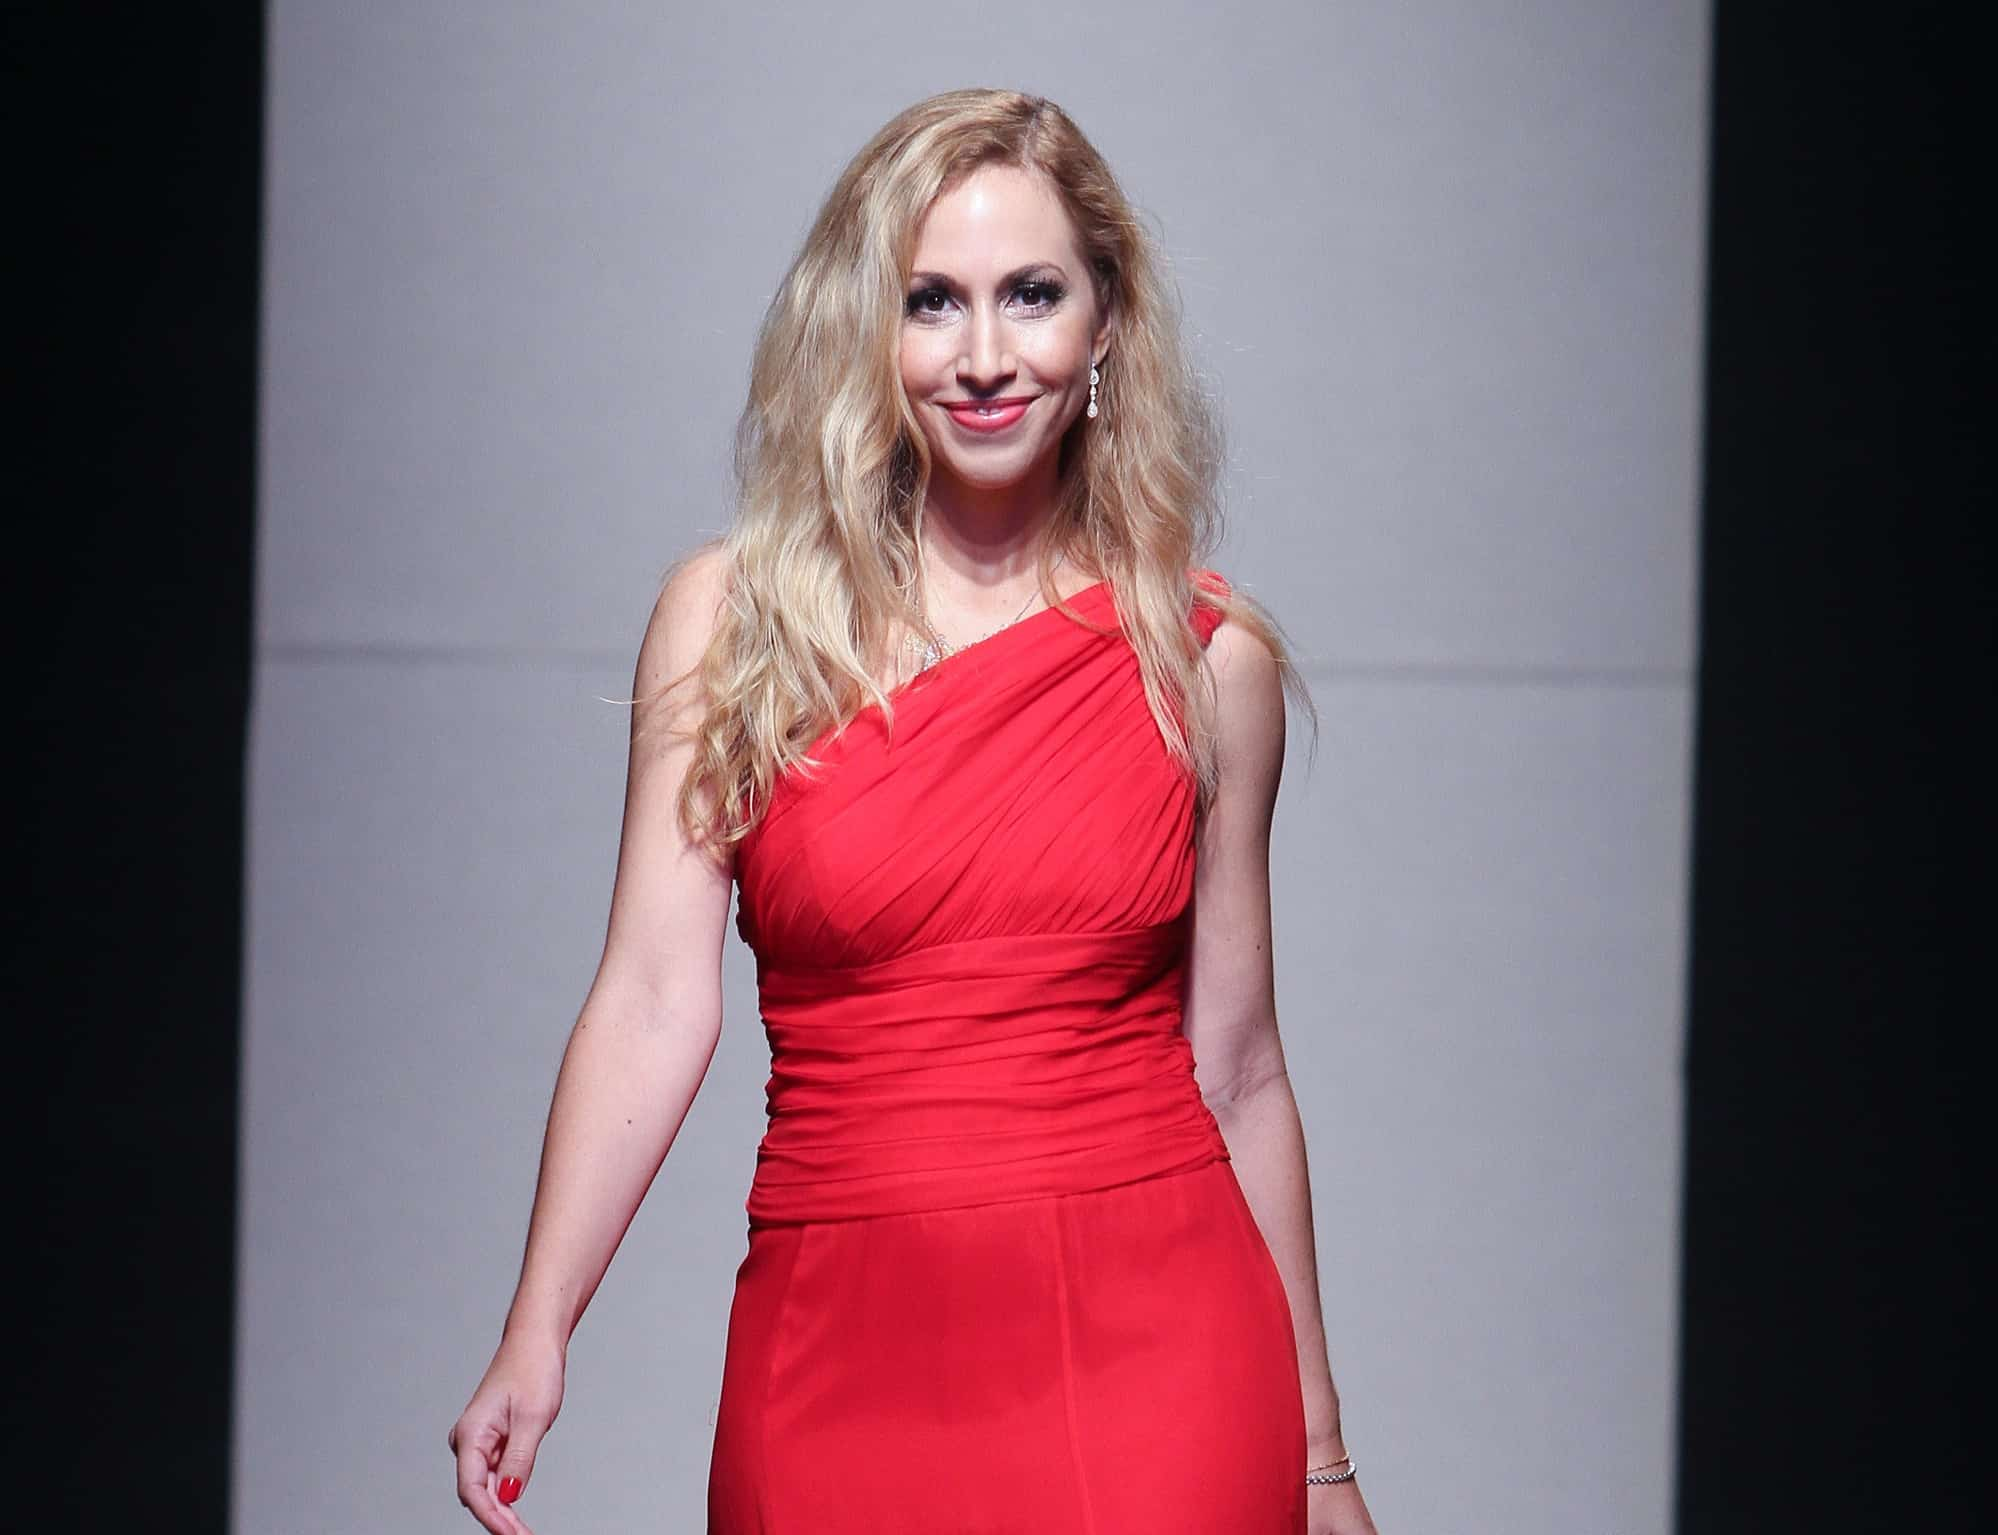 Jeannette Kaplun modela en Funkshion Fashion Week - Red Dress Fashion Show